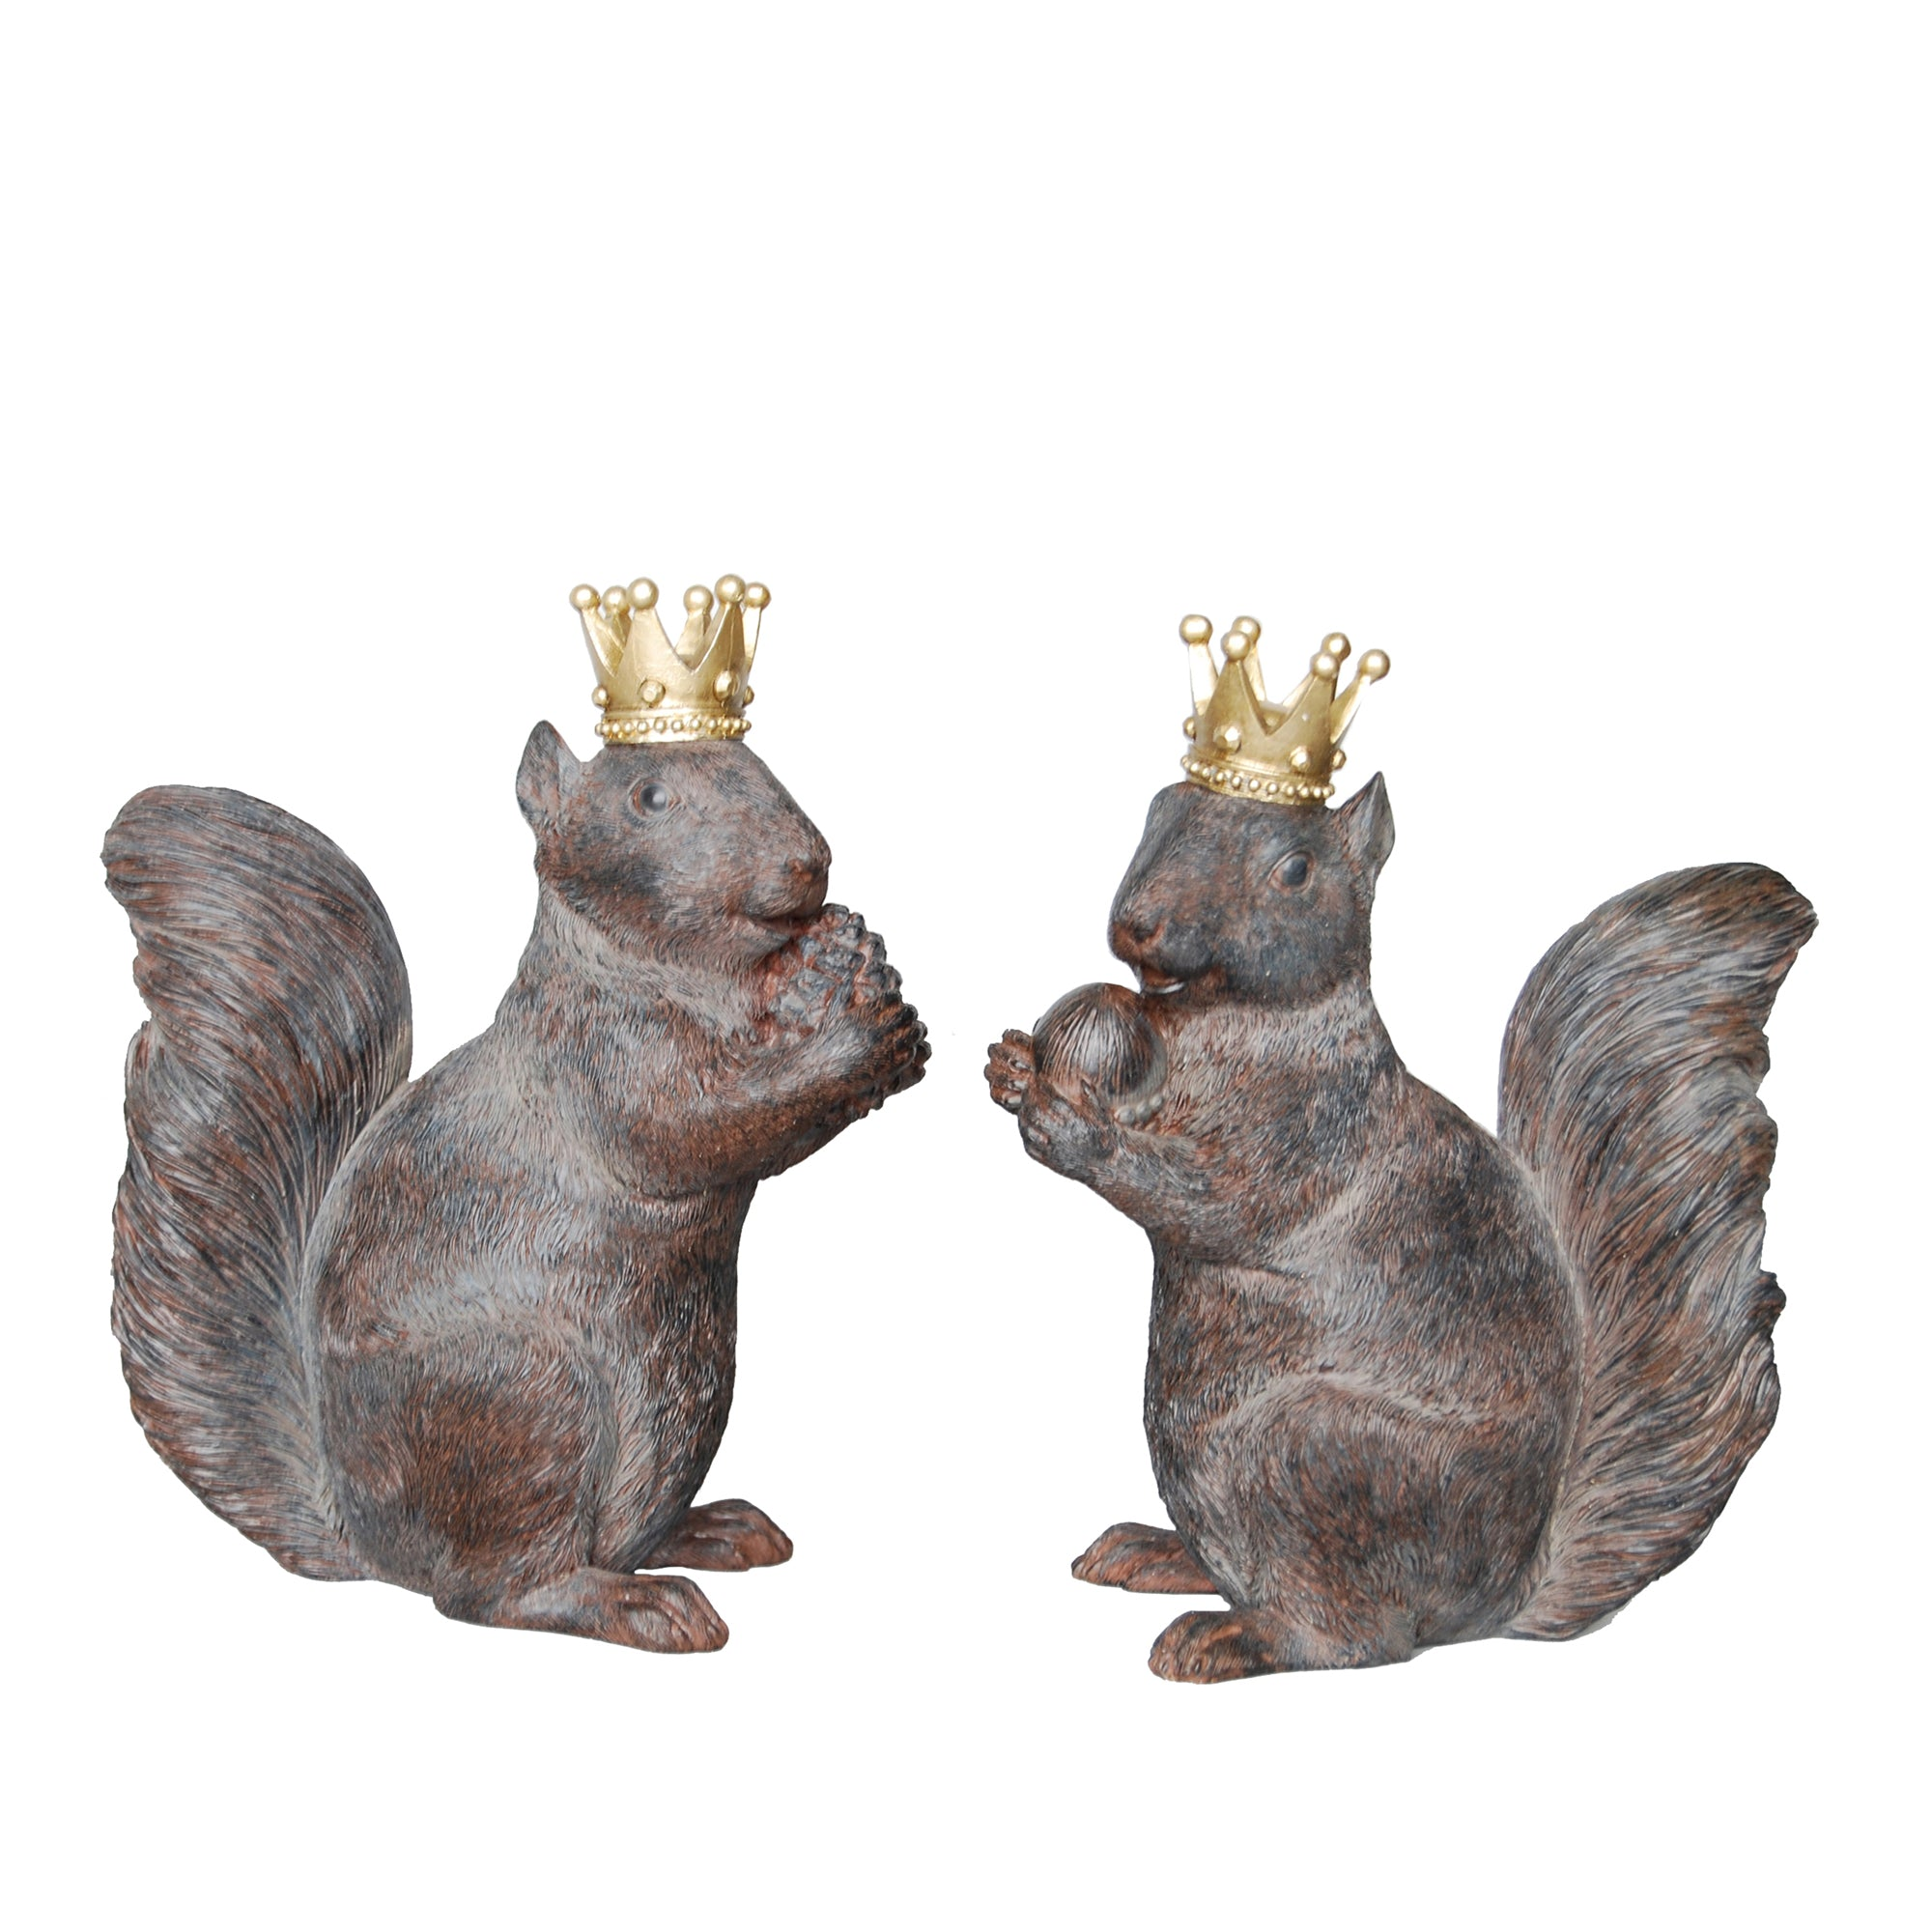 2/ASST RUST SQUIRRELS W/ CROWNS